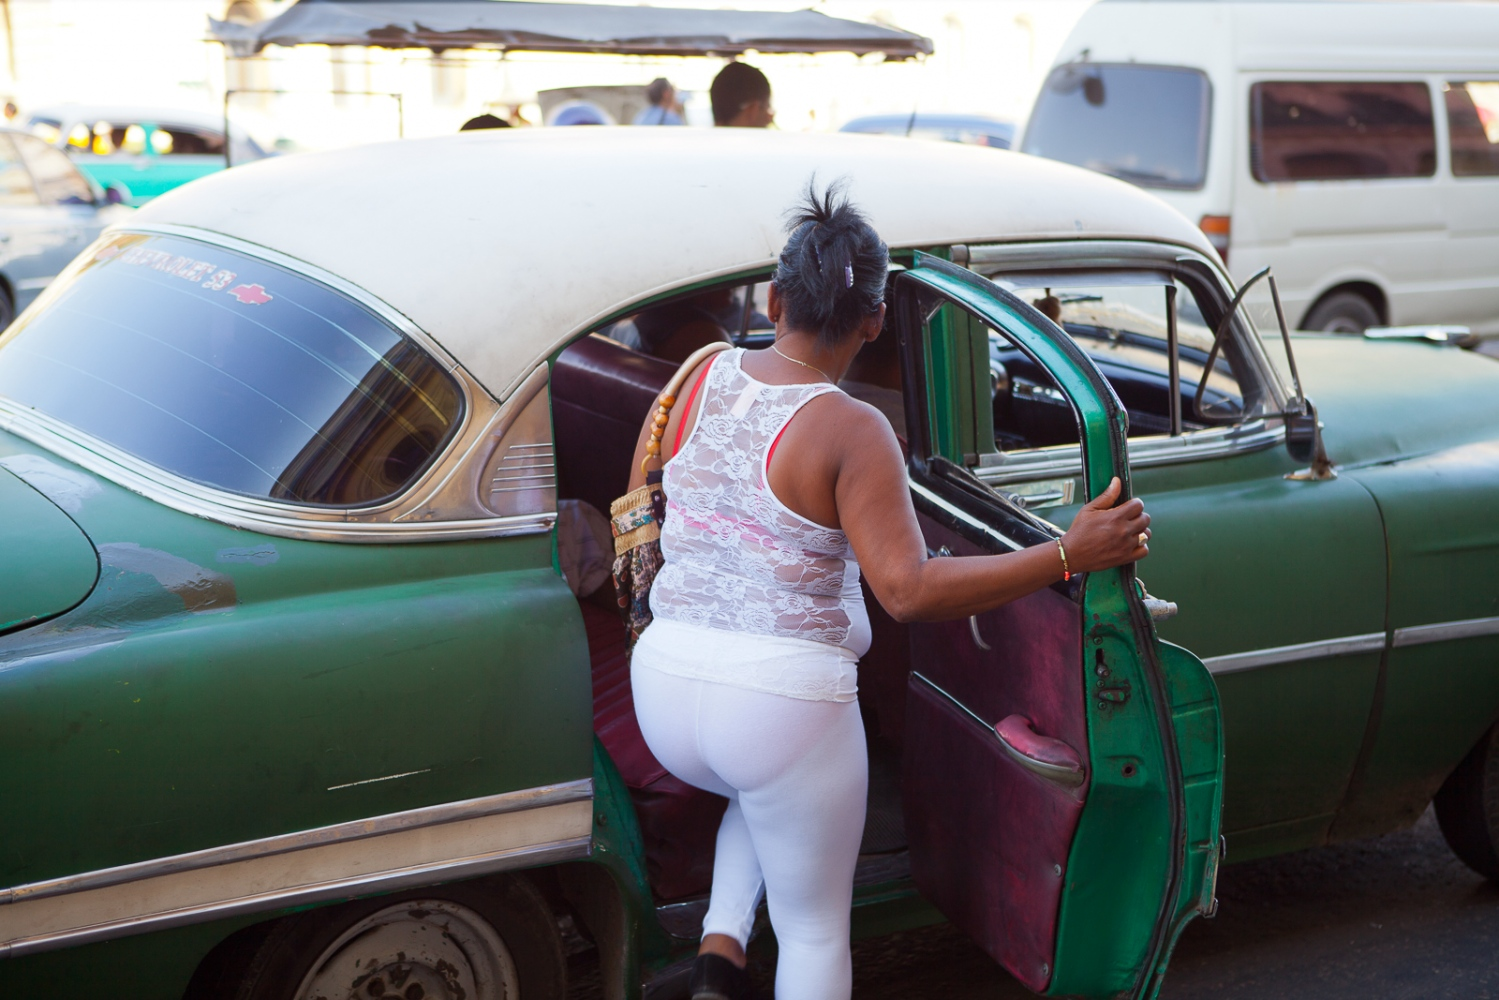 Street scene, Havana. Cuban women have no qualms or concerns about whether they are fat, skinny, or in between. They love to wear body-con outfits.